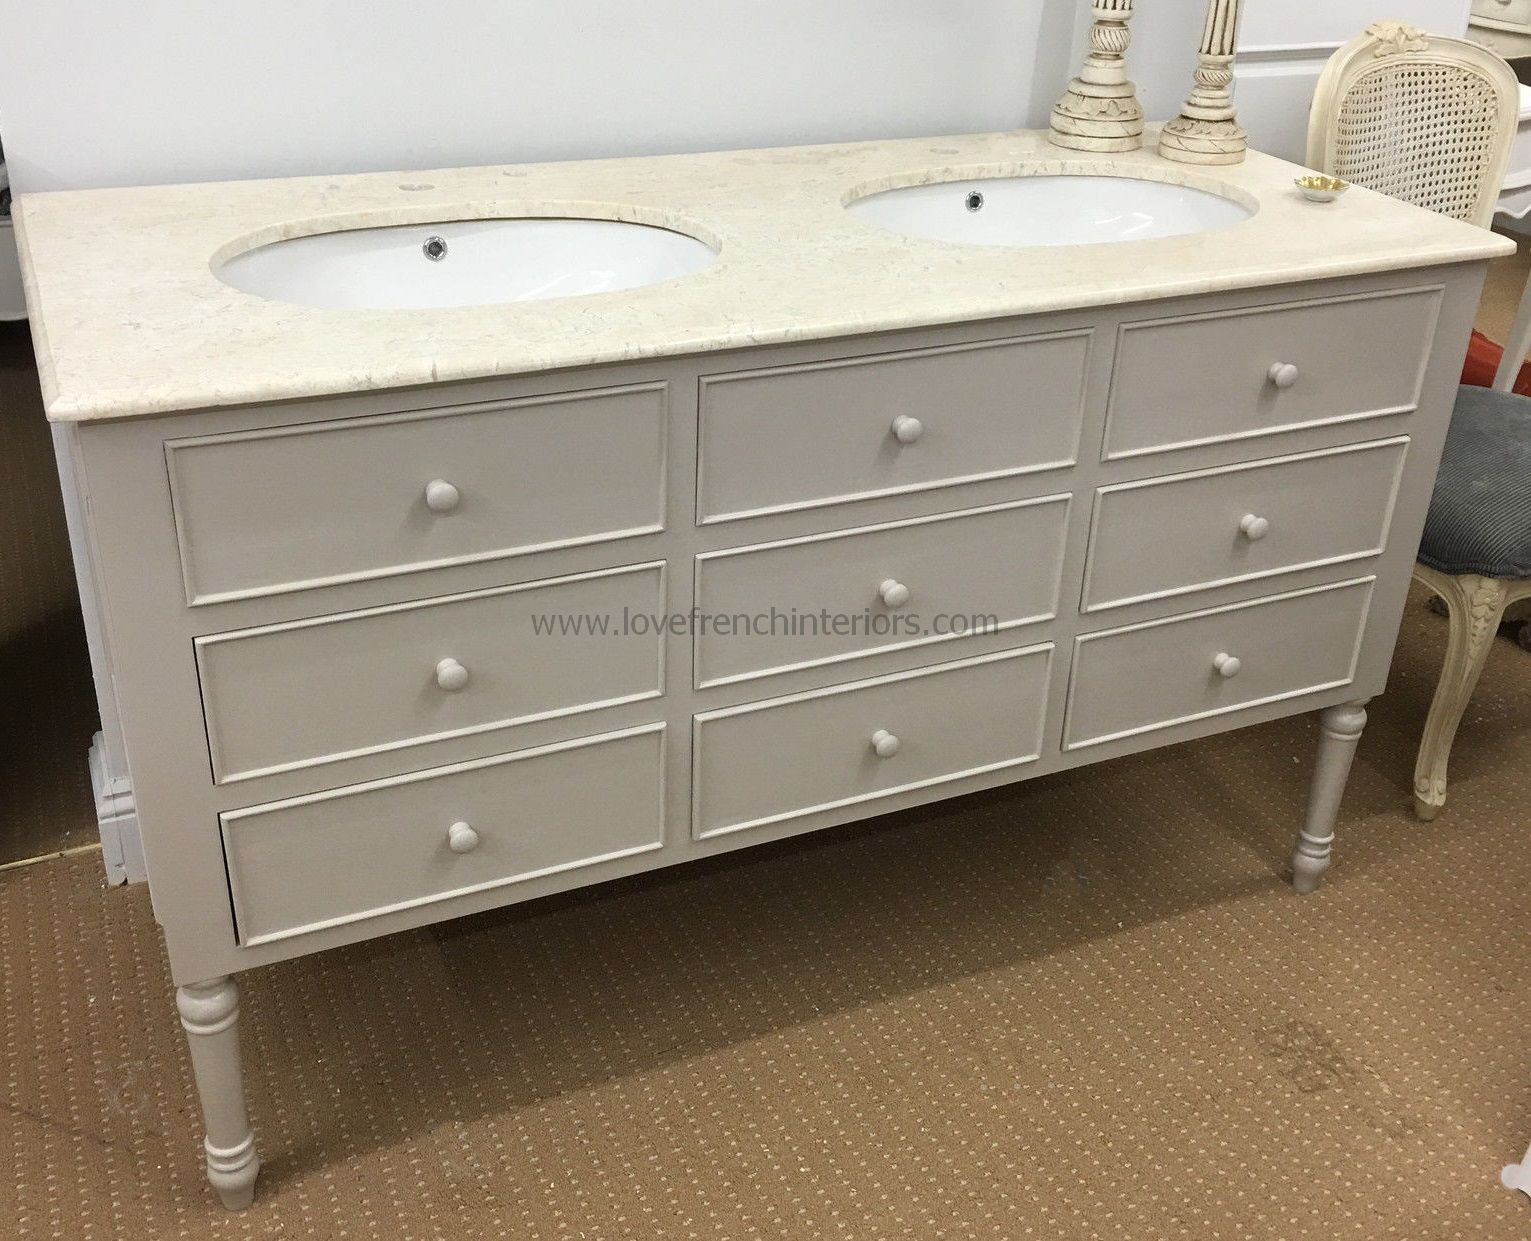 Assembly Bathroom Wicke Taps Hole Cabinets Delightful inside dimensions 1531 X 1241